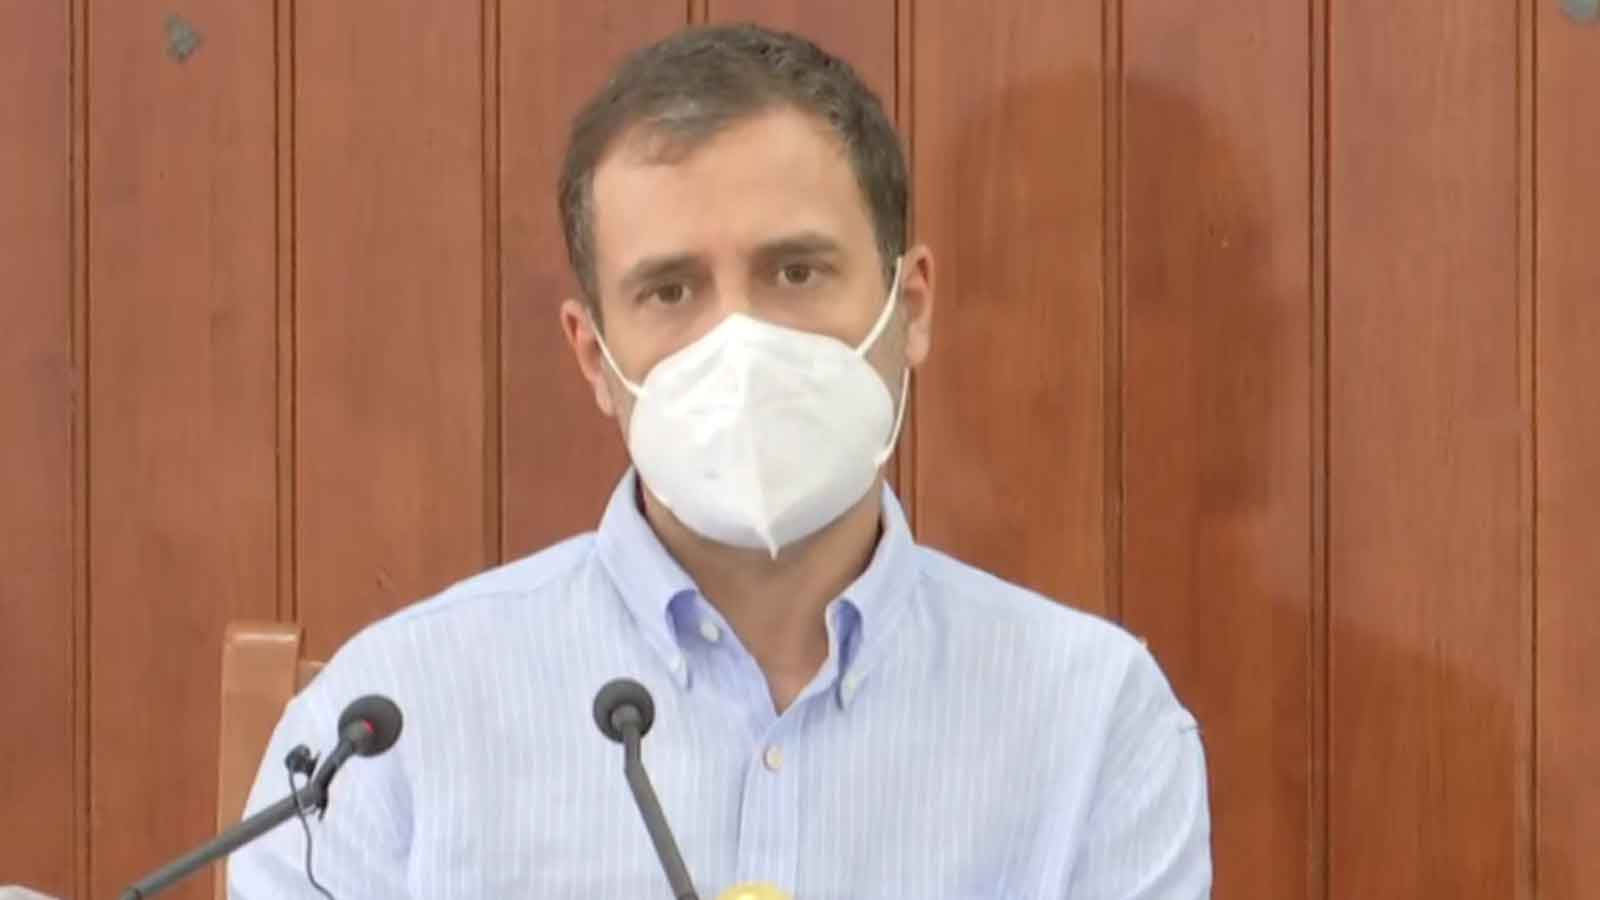 i-dont-appreciate-it-regardless-of-who-he-is-rahul-gandhi-on-kamal-naths-item-remark